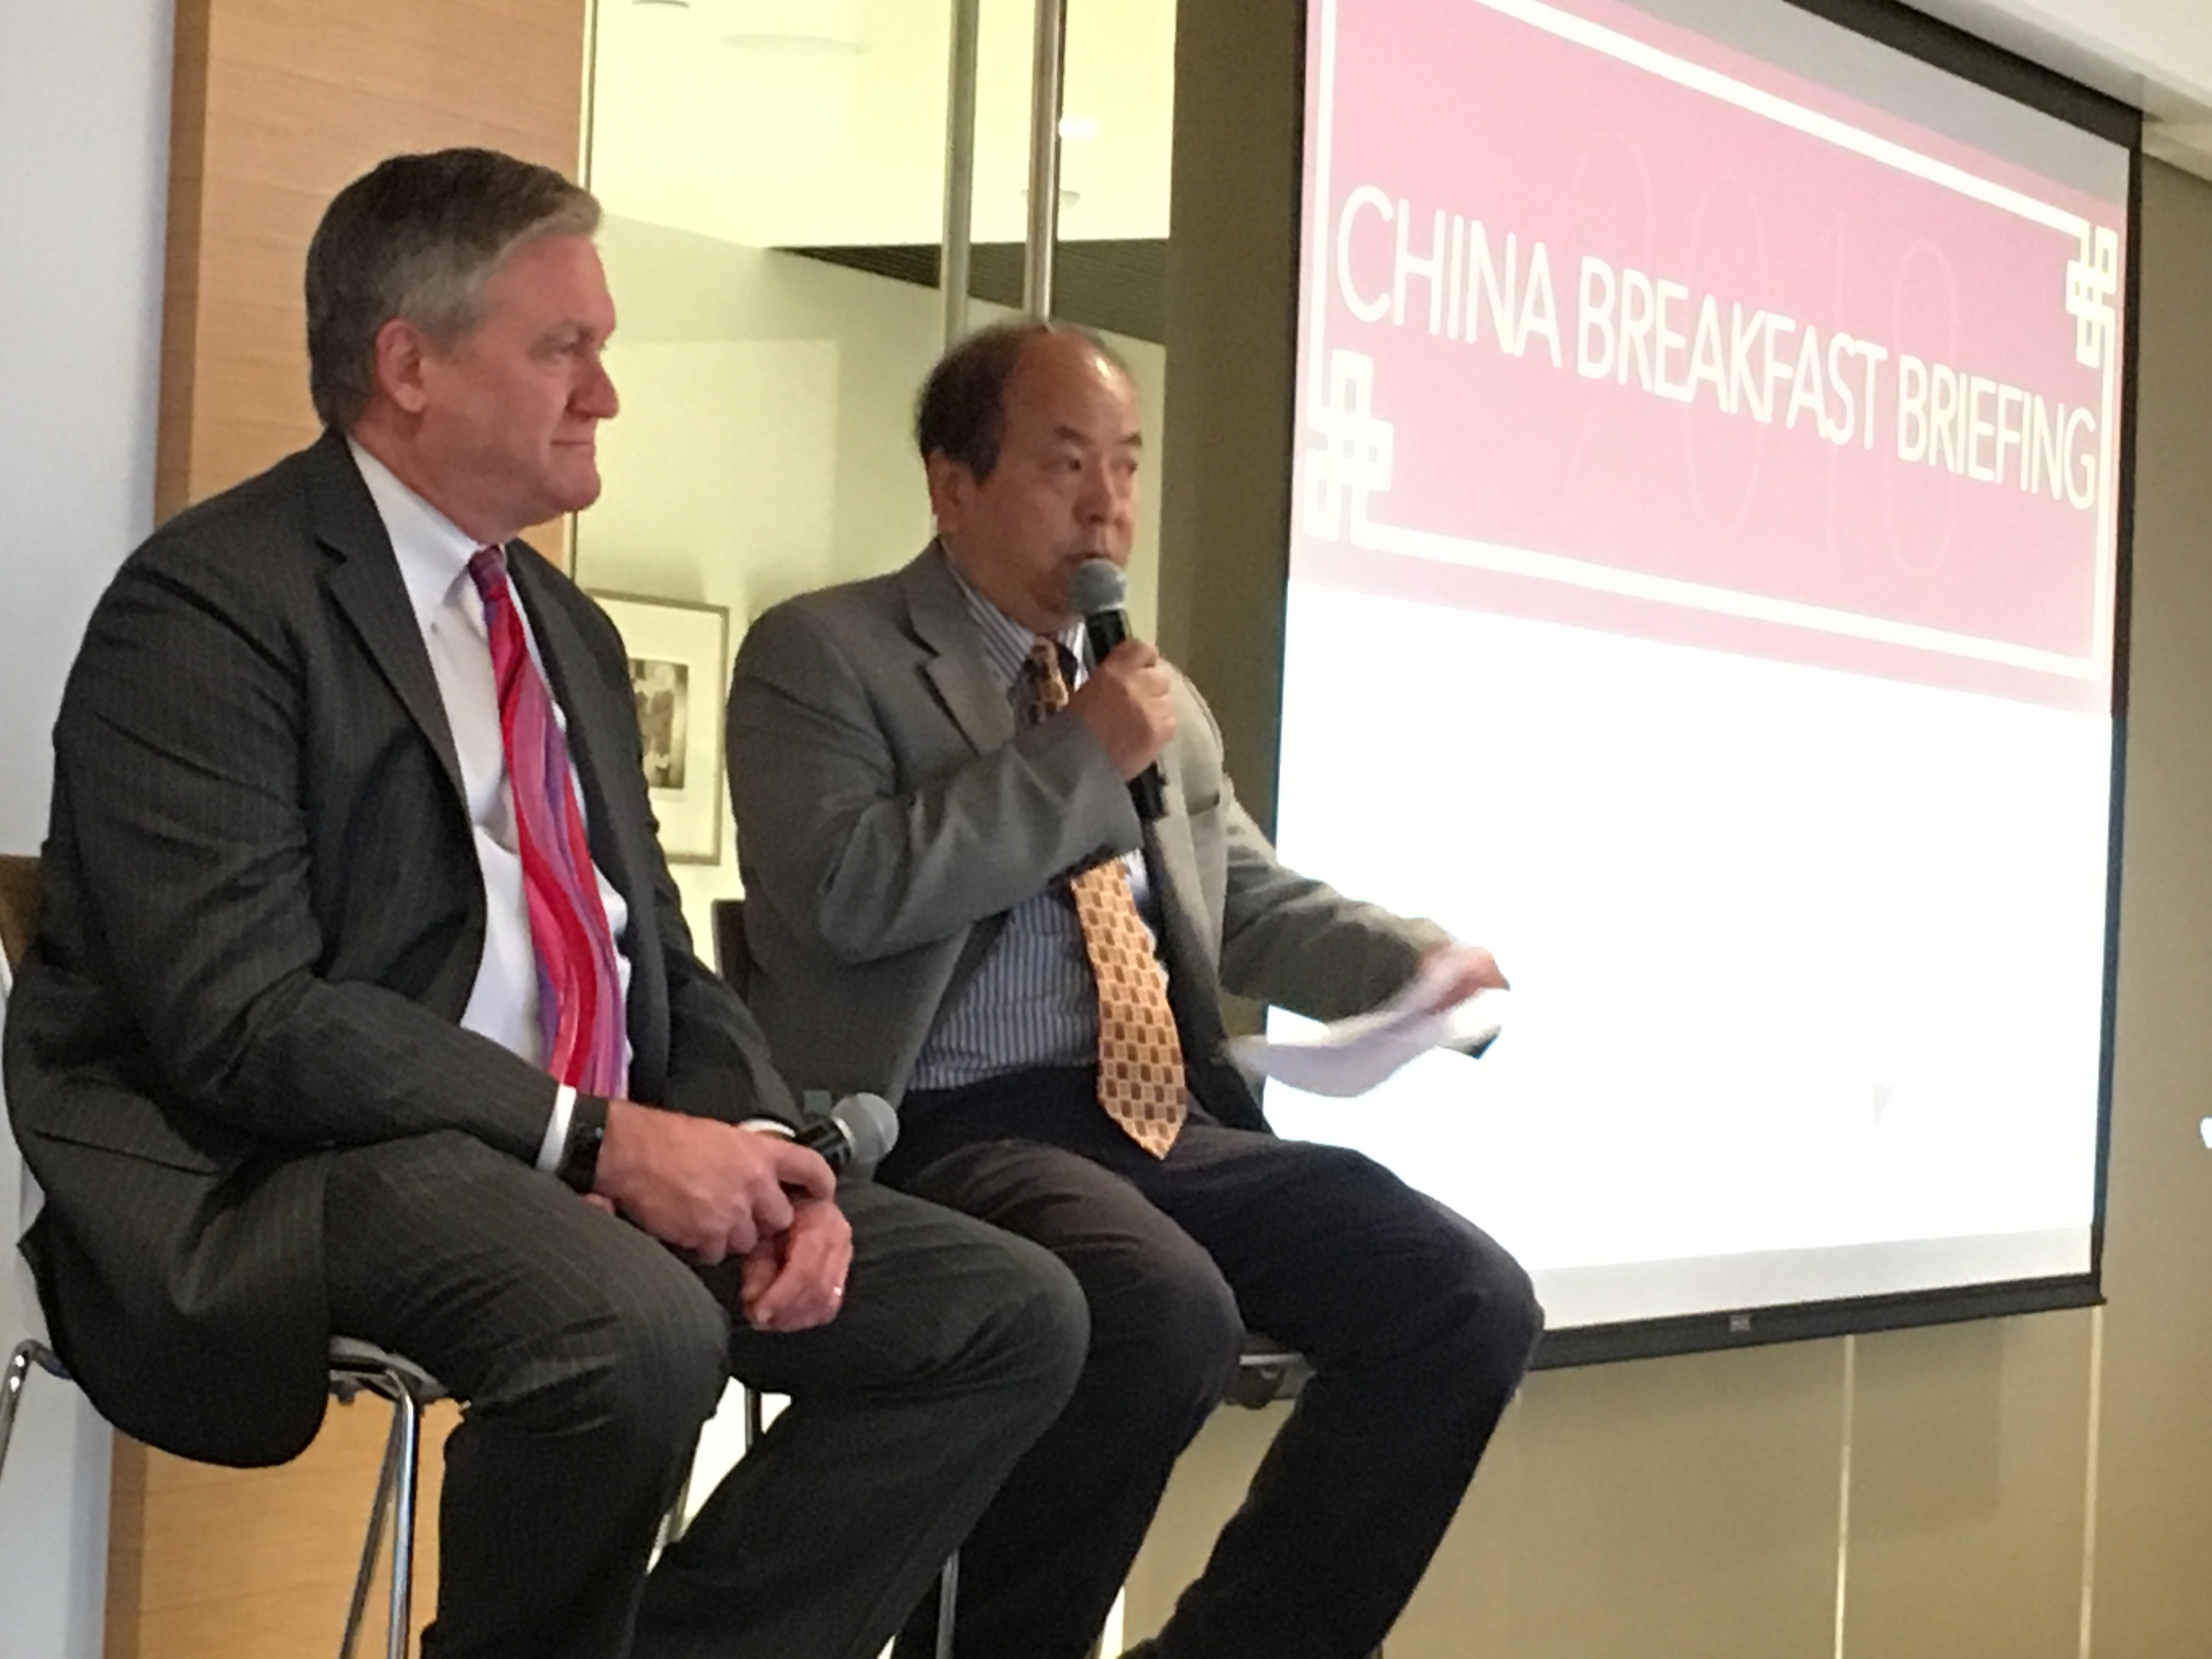 CRC's Annual China Breakfast Briefing Held